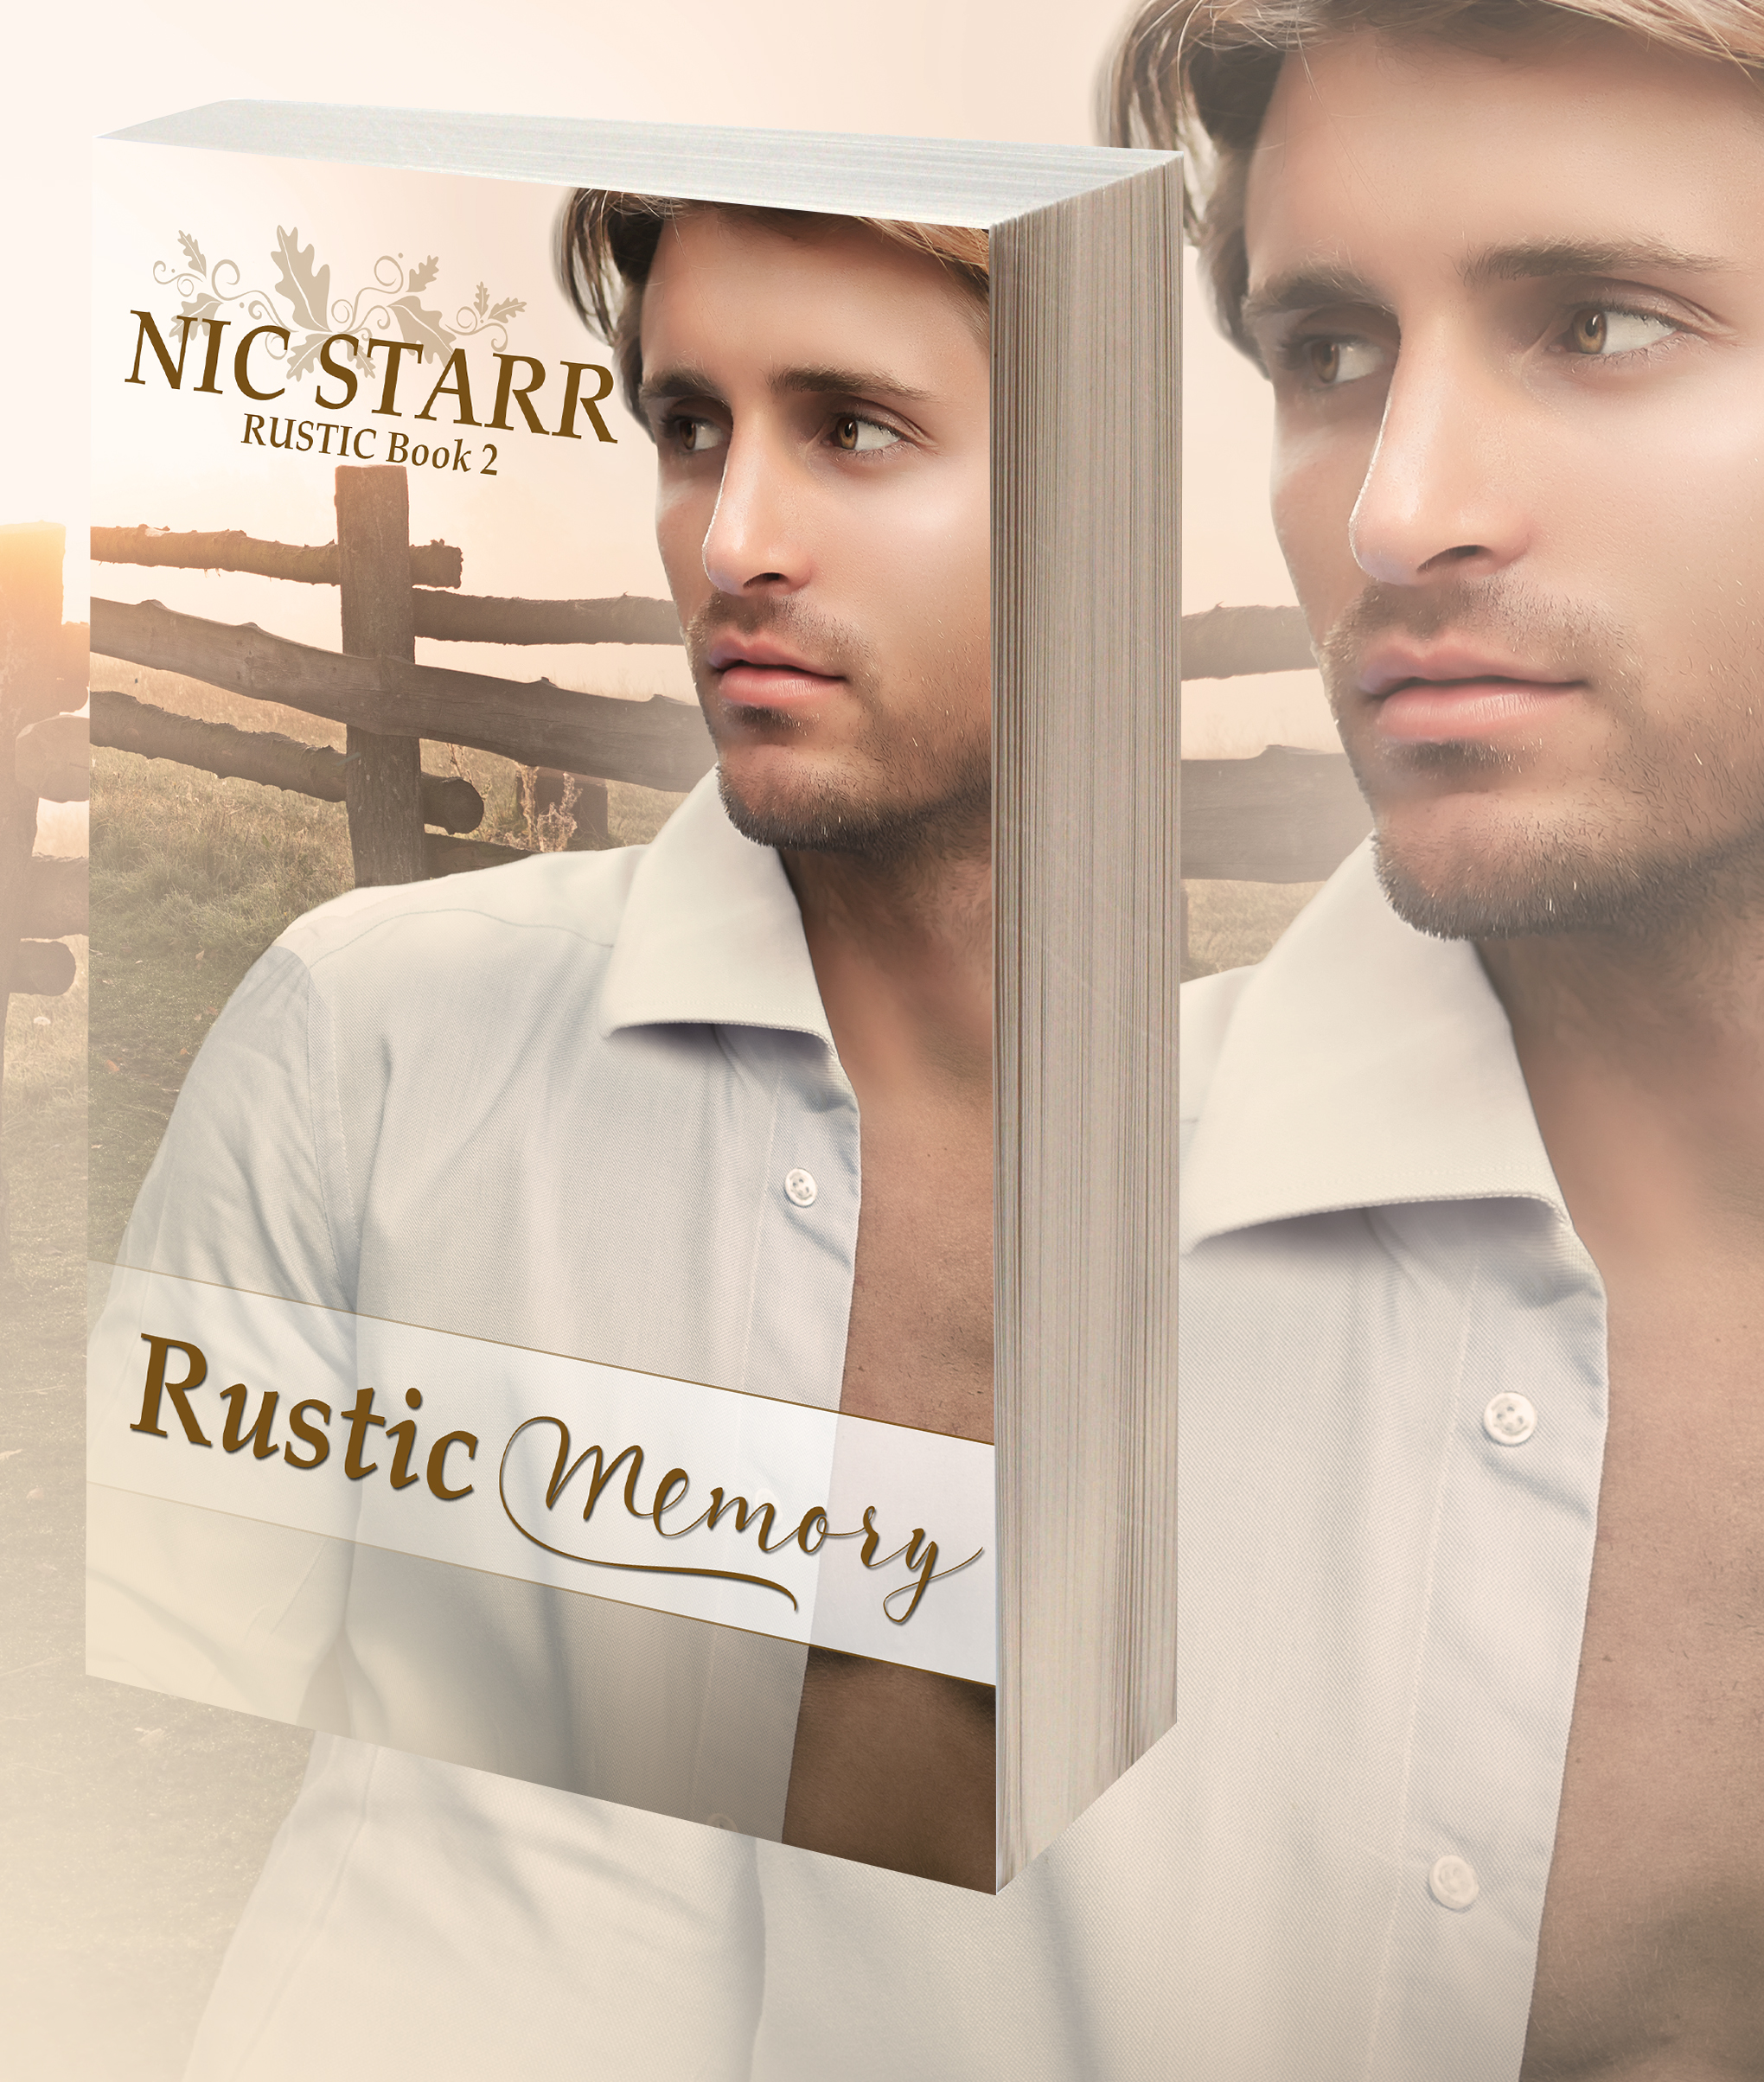 BOOK BLAST: Rustic Memory by Nic Starr